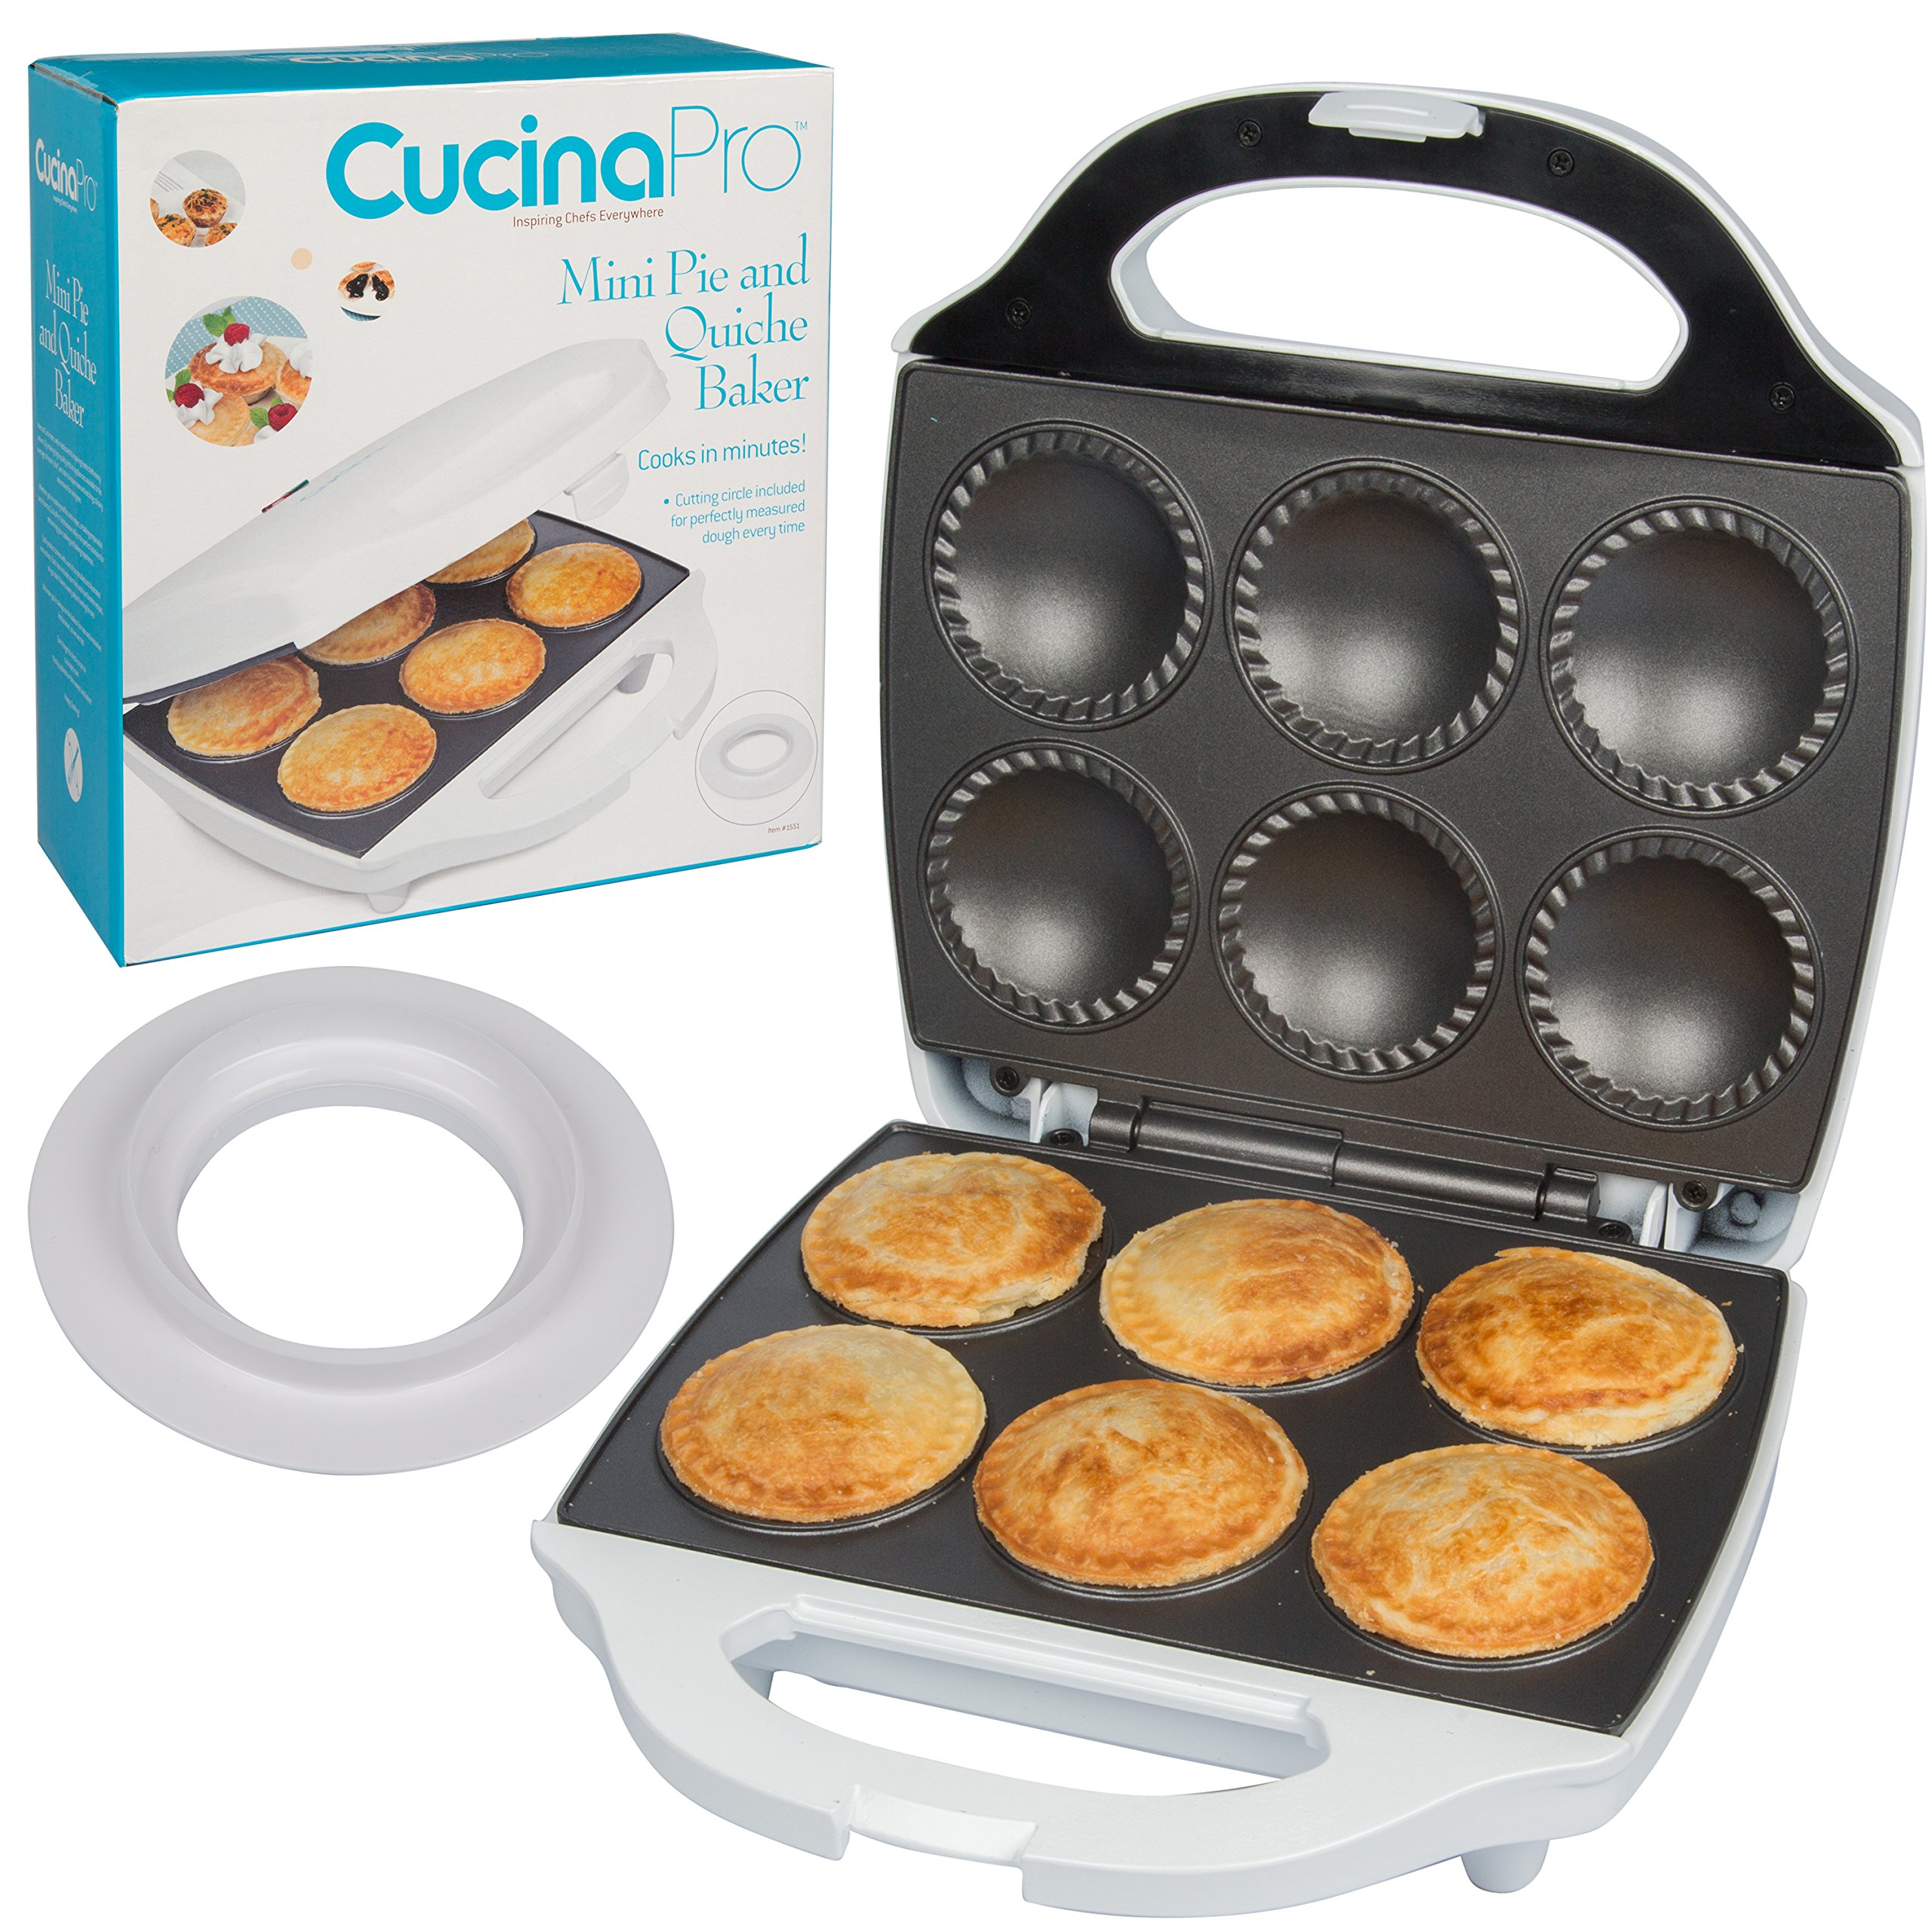 Mini Pie and Quiche Maker- Pie Baker Cooks 6 Small Pies and Quiches in Minutes- Non-stick Cooker w Dough Cutting Circle for Easy Dough Measurement